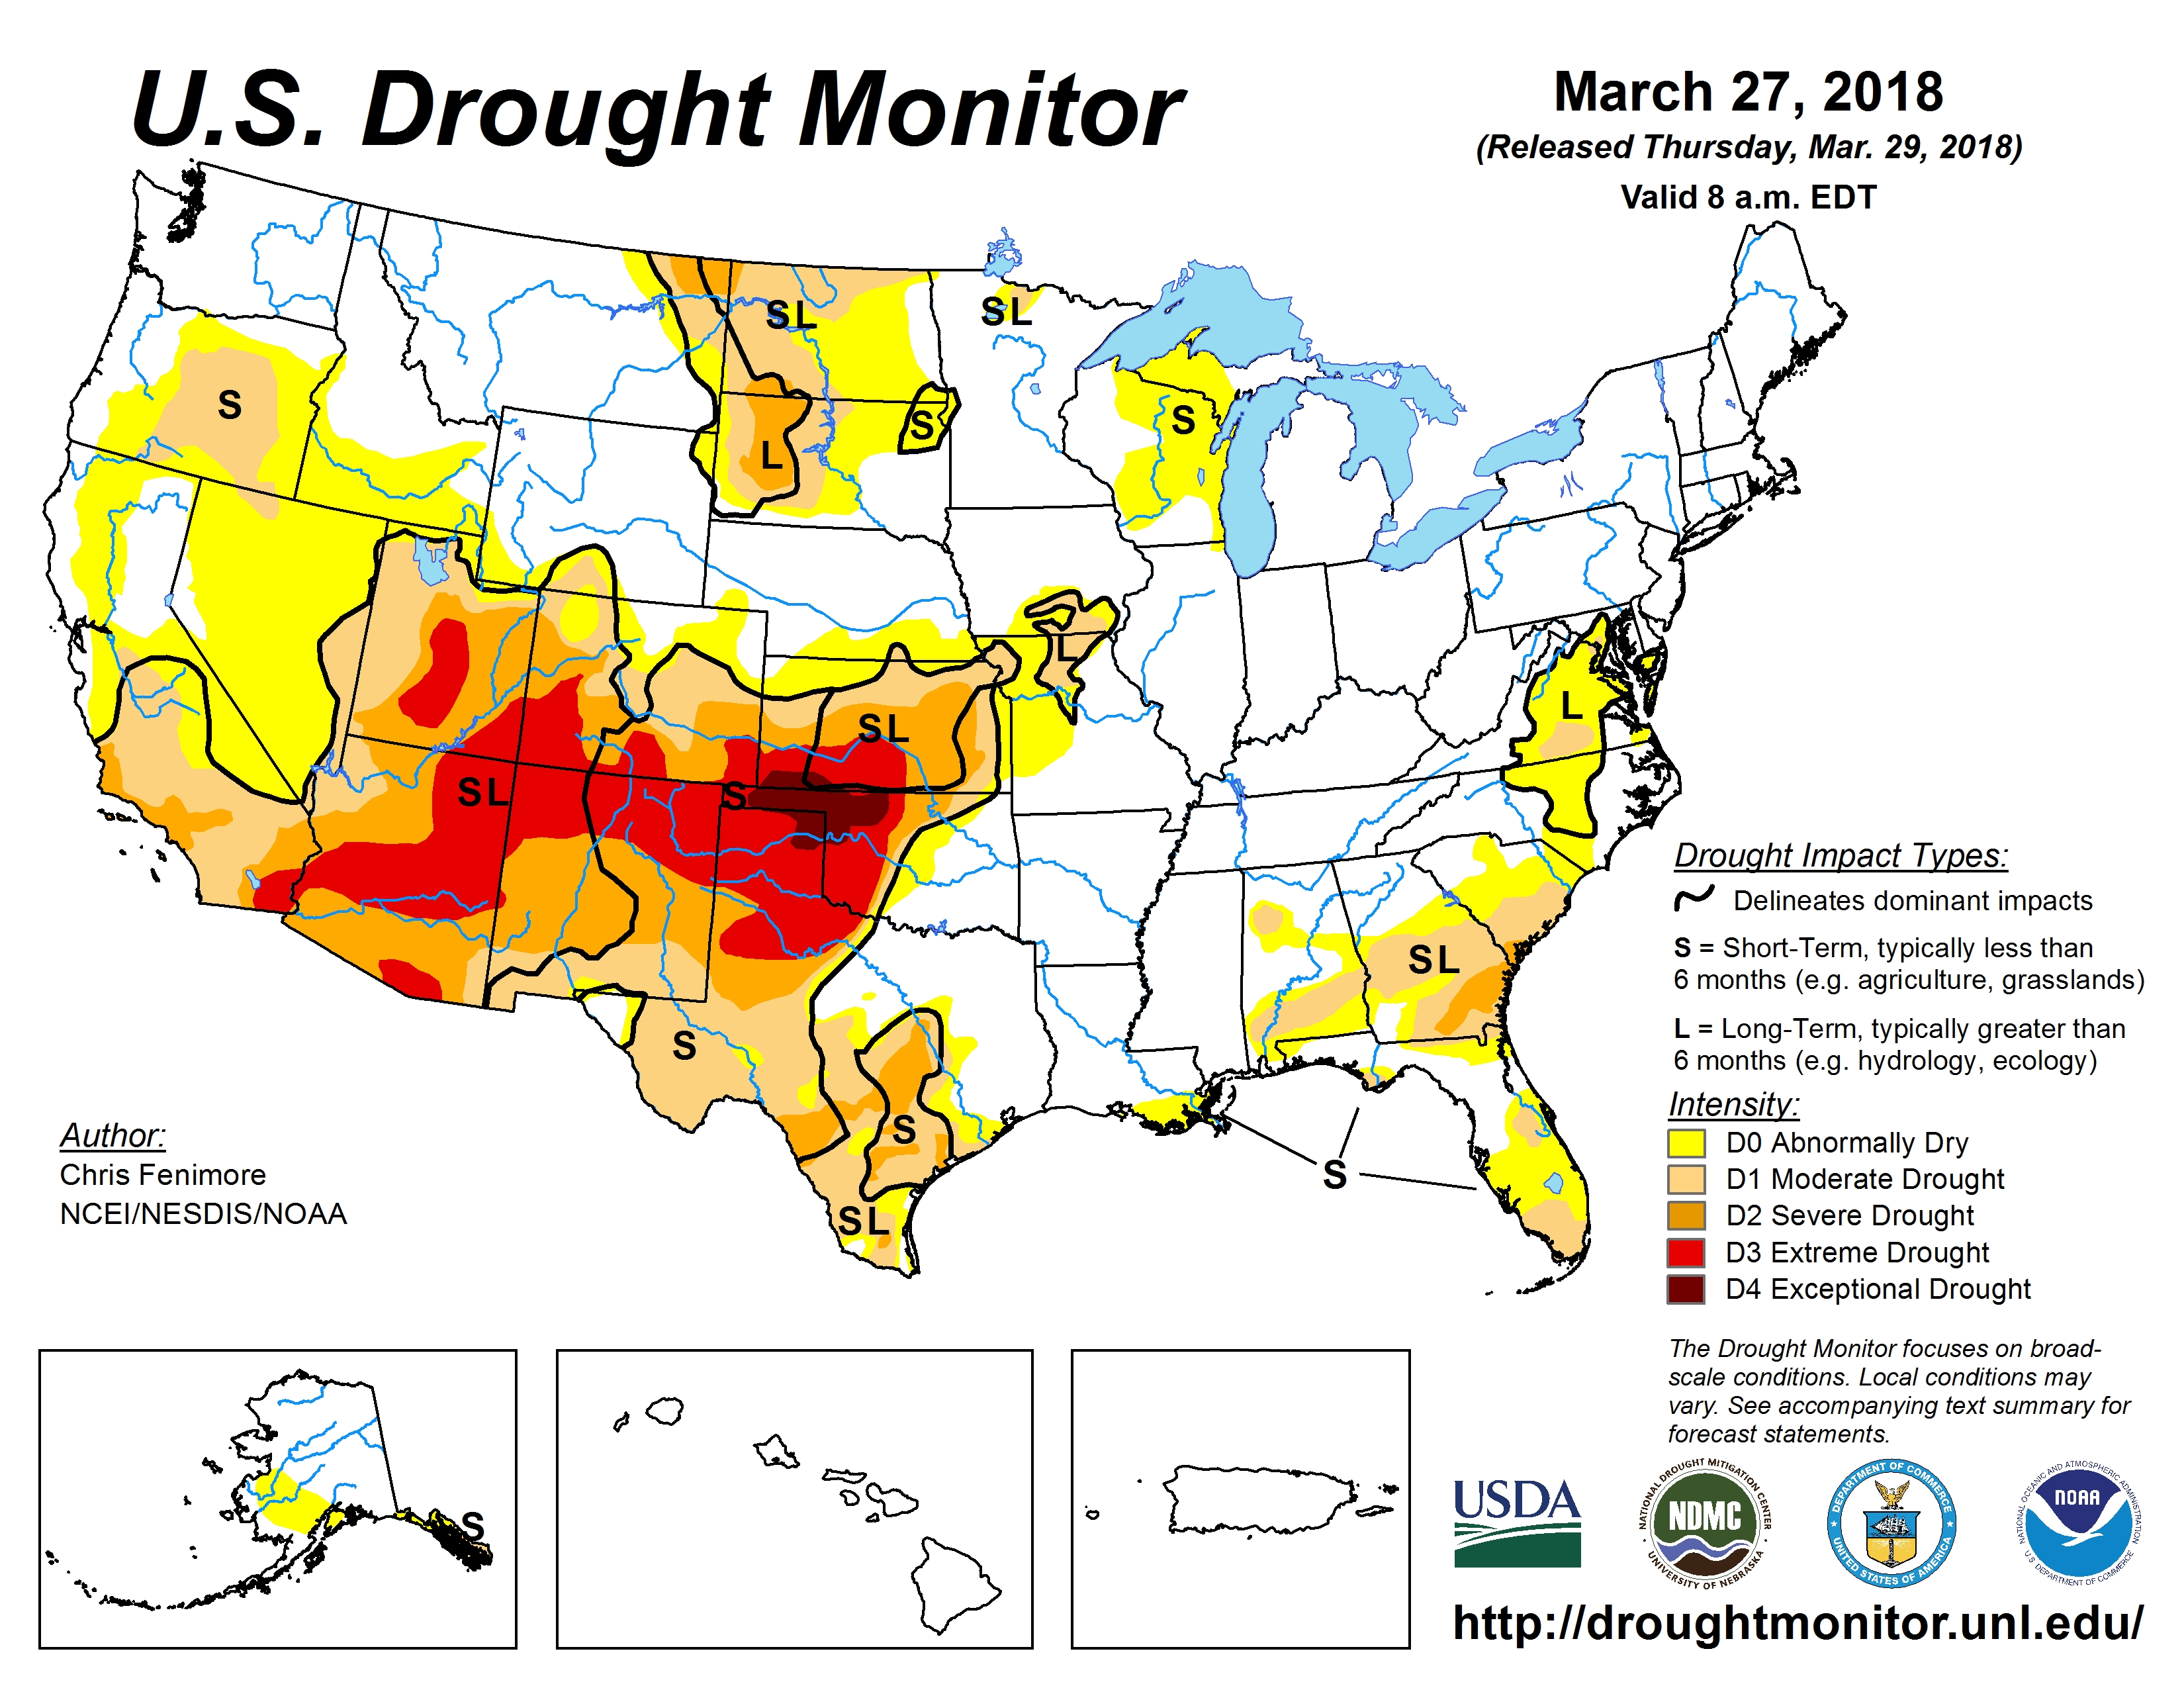 US Drought Monitor report for March 27, 2018